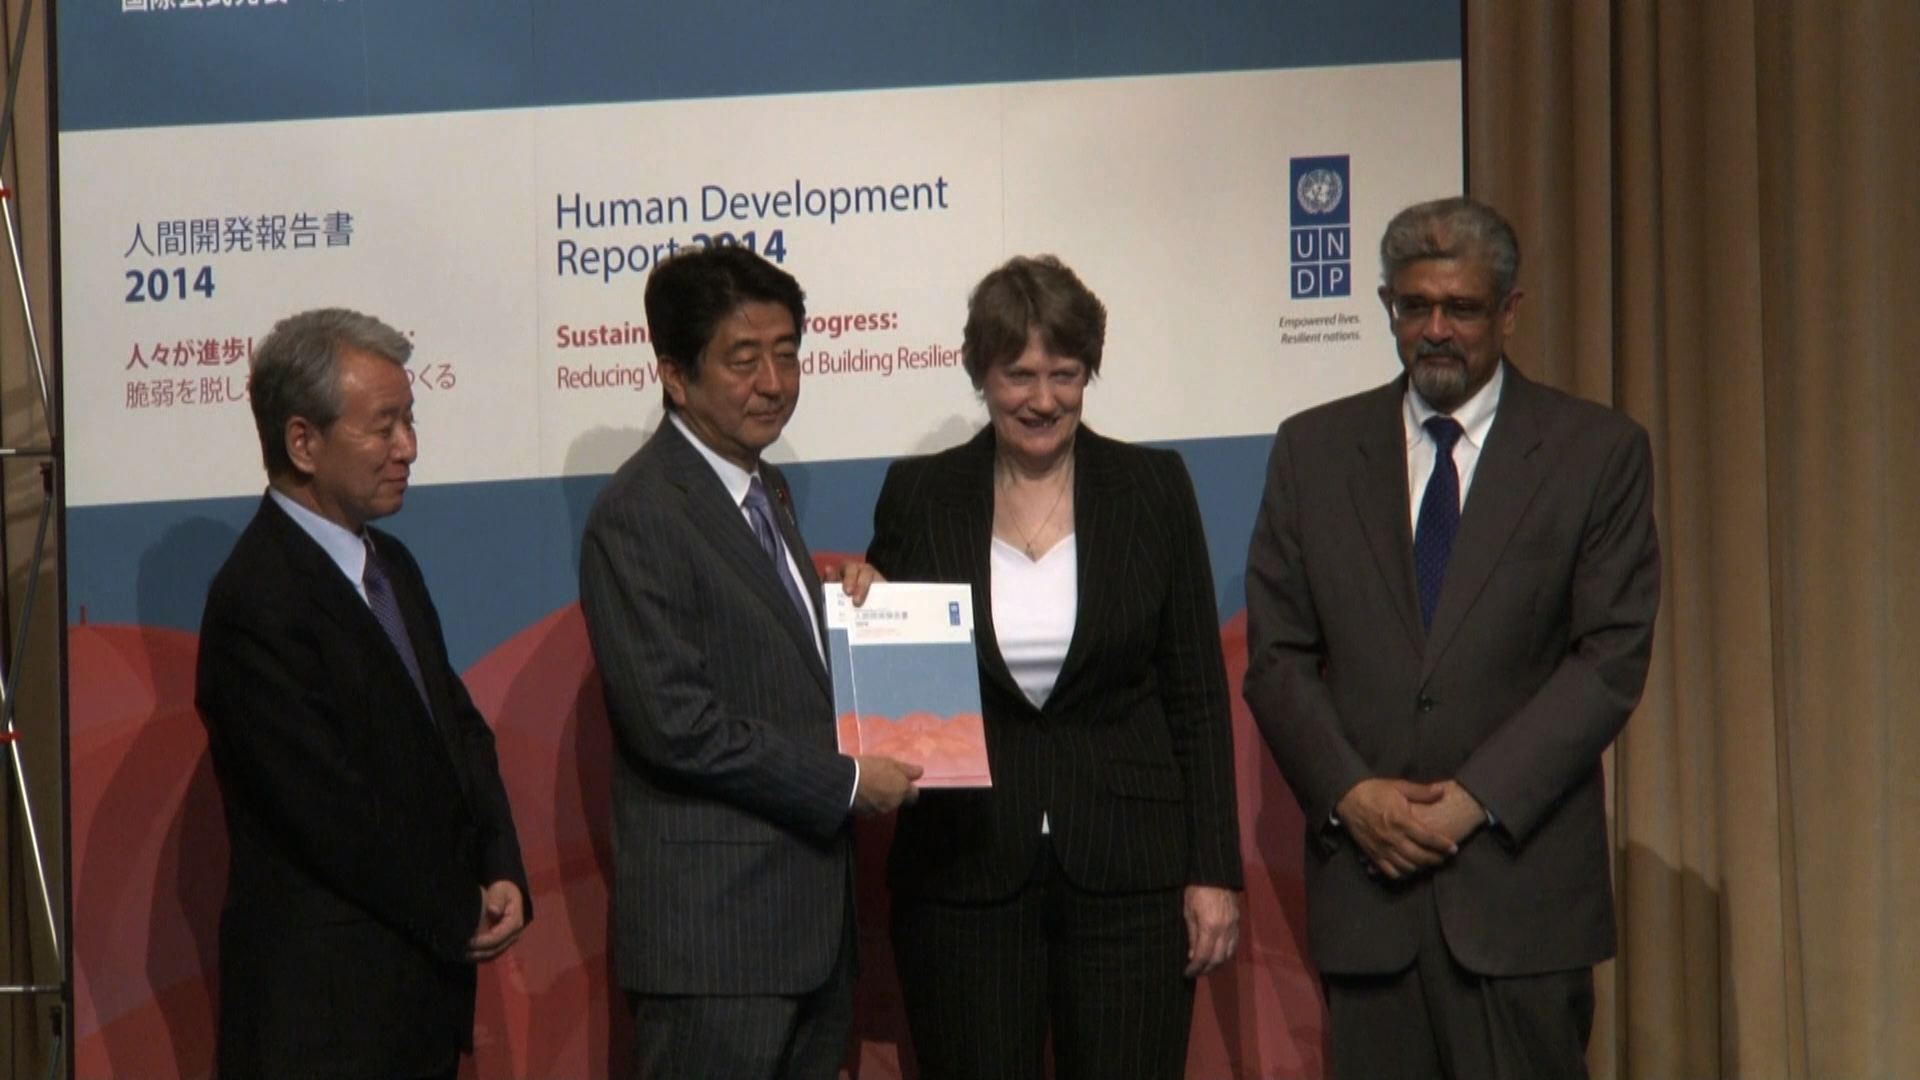 Selected frame from video story UNDP / HUMAN DEVELOPMENT REPORT